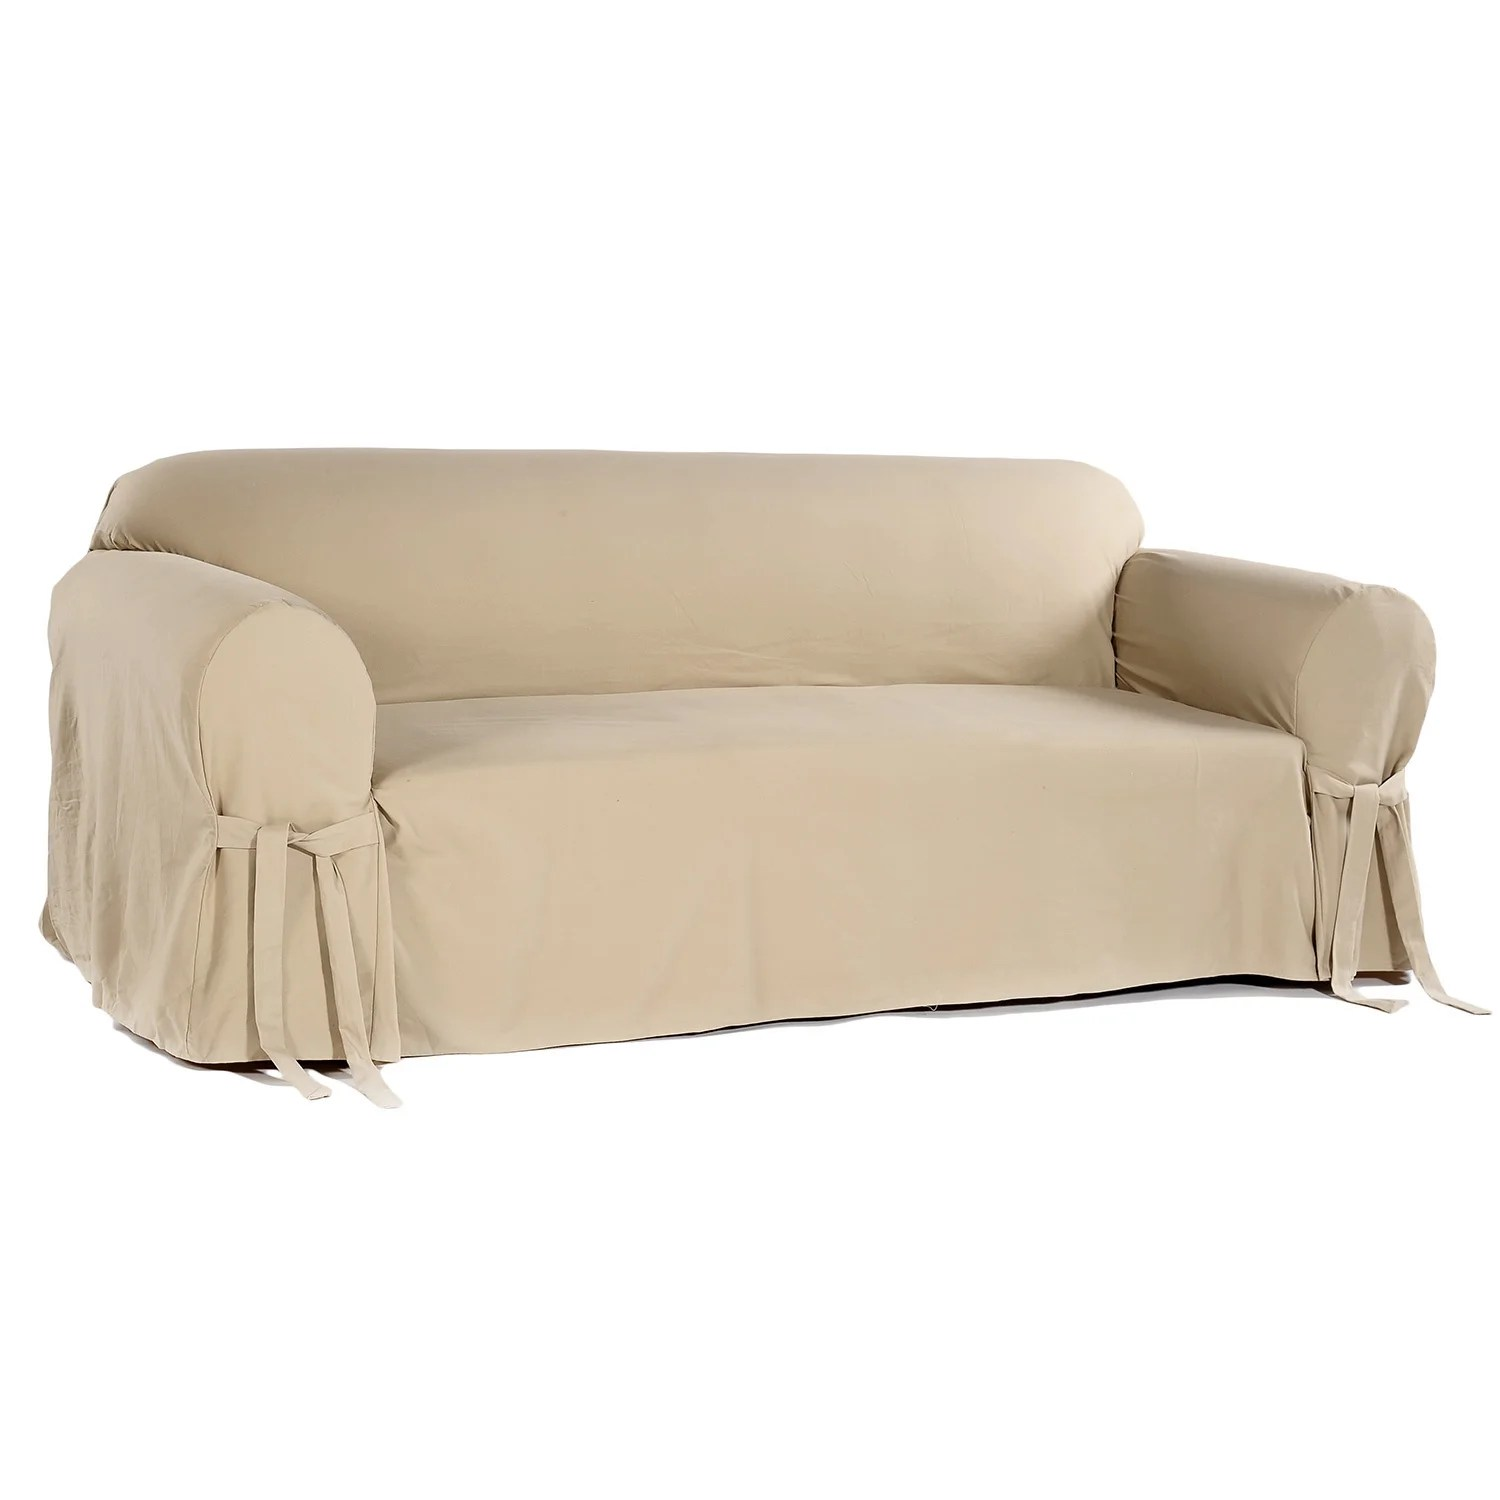 khaki sofa slipcovers reclining mage classic brushed twill slipcover ebay